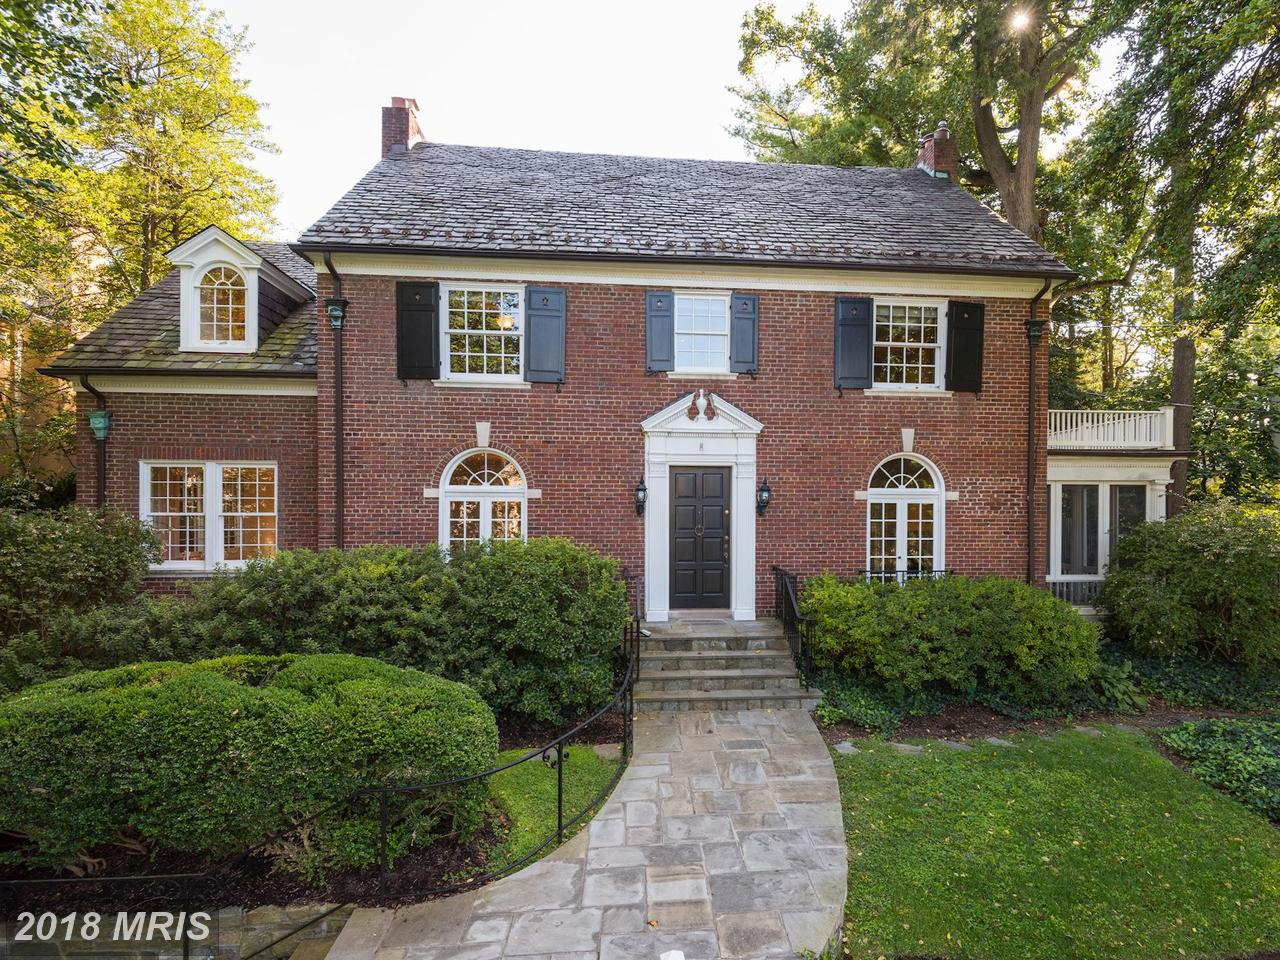 Single Family Home for Sale at Colonial, Detached - CHEVY CHASE, MD 202 PRIMROSE ST Chevy Chase, Maryland,20815 United States